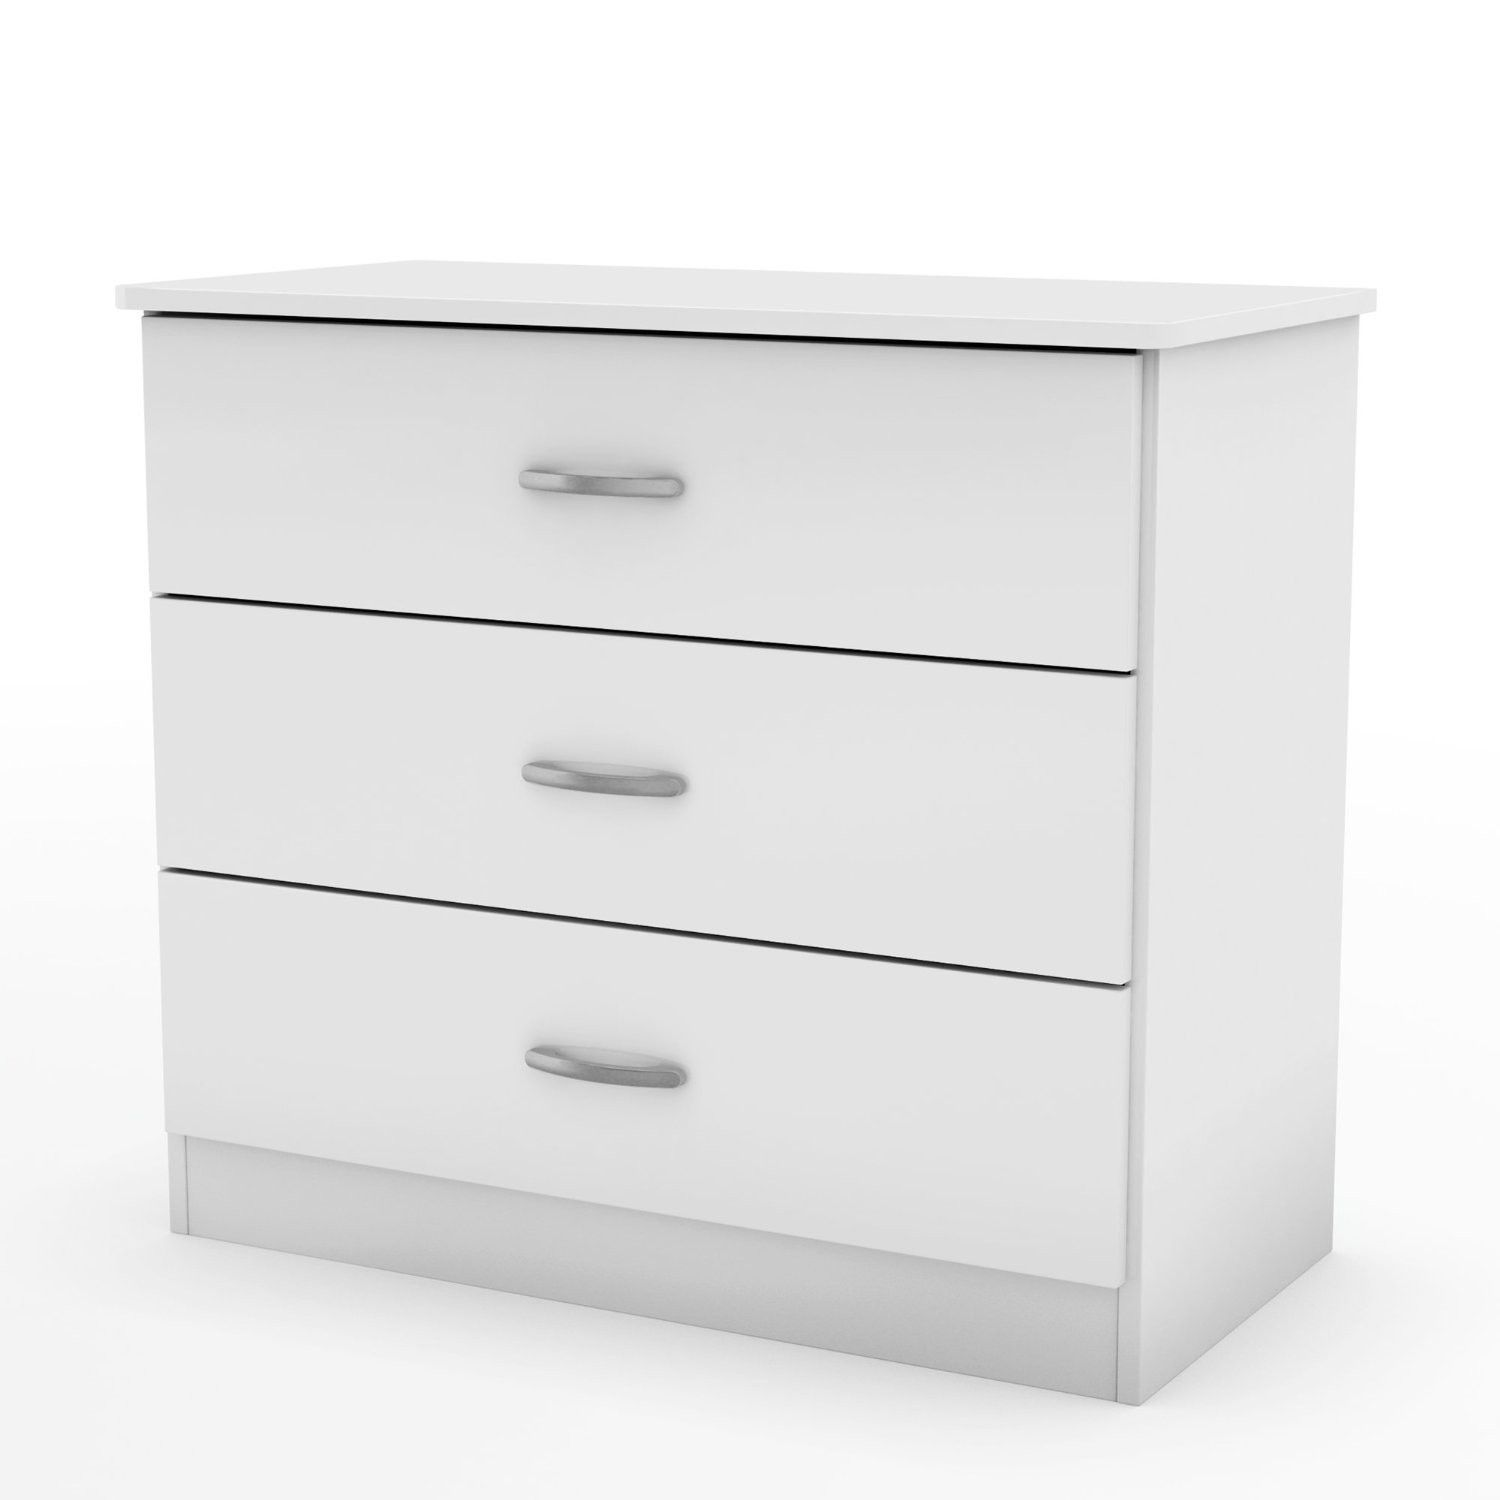 White Modern Bedroom Chest Dresser with 3 Drawers is part of Modern bedroom Storage - This White Modern Bedroom Chest Dresser with 3 Drawers coordinates with virtually any décor thanks to its contemporary styling and sleek and simple lines  Fully functional and adaptable, it will meet all your needs — from clothes storage in its three spacious drawers, to serving as a stand for your various decorative items, or even as a solid base for your TV  It has also been designed with safety in mind, featuring rounded corners  Antique finish metal handles are adding value to the furniture  This chest is made of recycled CARB compliant particle pannels  The glides are made of polymer and include dampers and catches, creating a secure environment for little ones  This chest has to be assembled by two adults  Measures 31 inches wide by 16 25 inches deep by 28 75 inches high  It is delivered in one box measuring 38 inches by 20 inches by 8 25 inches and weighs 58 pounds  Tools are not included  5 year warranty  Made in Mexico  Manufacturer style number 3050033   White Modern Bedroom Chest Dresser with 3 Drawers Contemporary 3 drawer chest Manufactured from CARB compliant composite wood carrying the Forest Stewardship Council (FSC) certification Lifetimewarranted polymer drawer glides that include dampers and stops; antique finish metal handles Assembly required by two adults Tools not provided To clean, use a soft dry cloth Made in Mexico 5year warranty  Dimensions   31 x 16 2 x 28 8 inches Weight 56lbs  Shipping Weight 59 2lbs